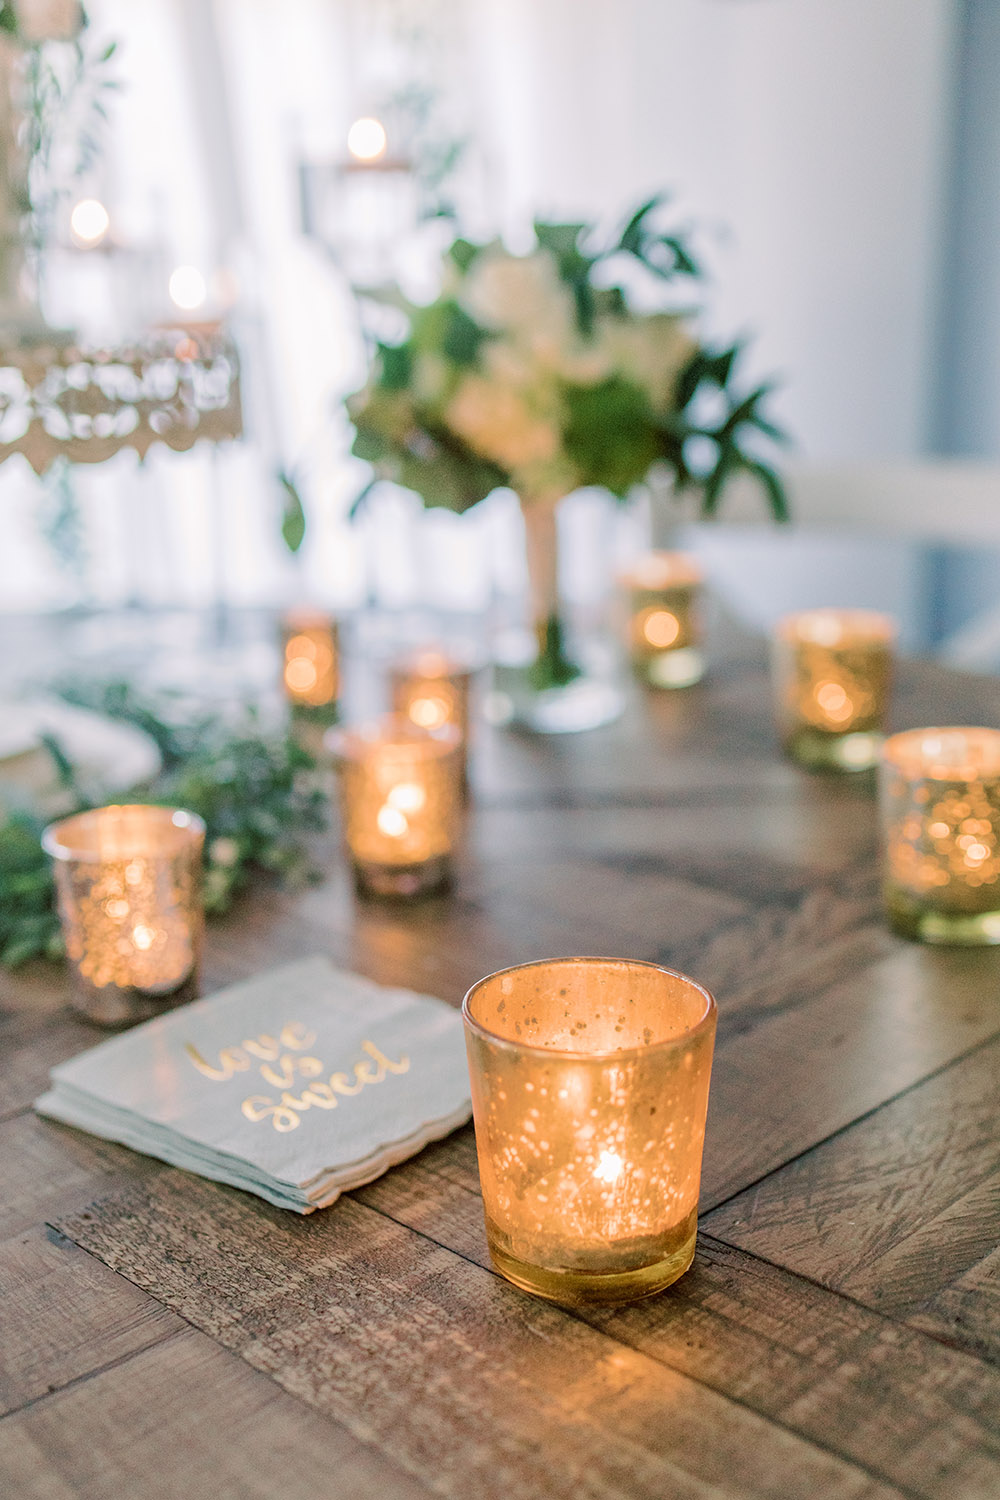 Mercury glass votives add a warm glow to the cake table. Photo: Ashley Kristen Photography